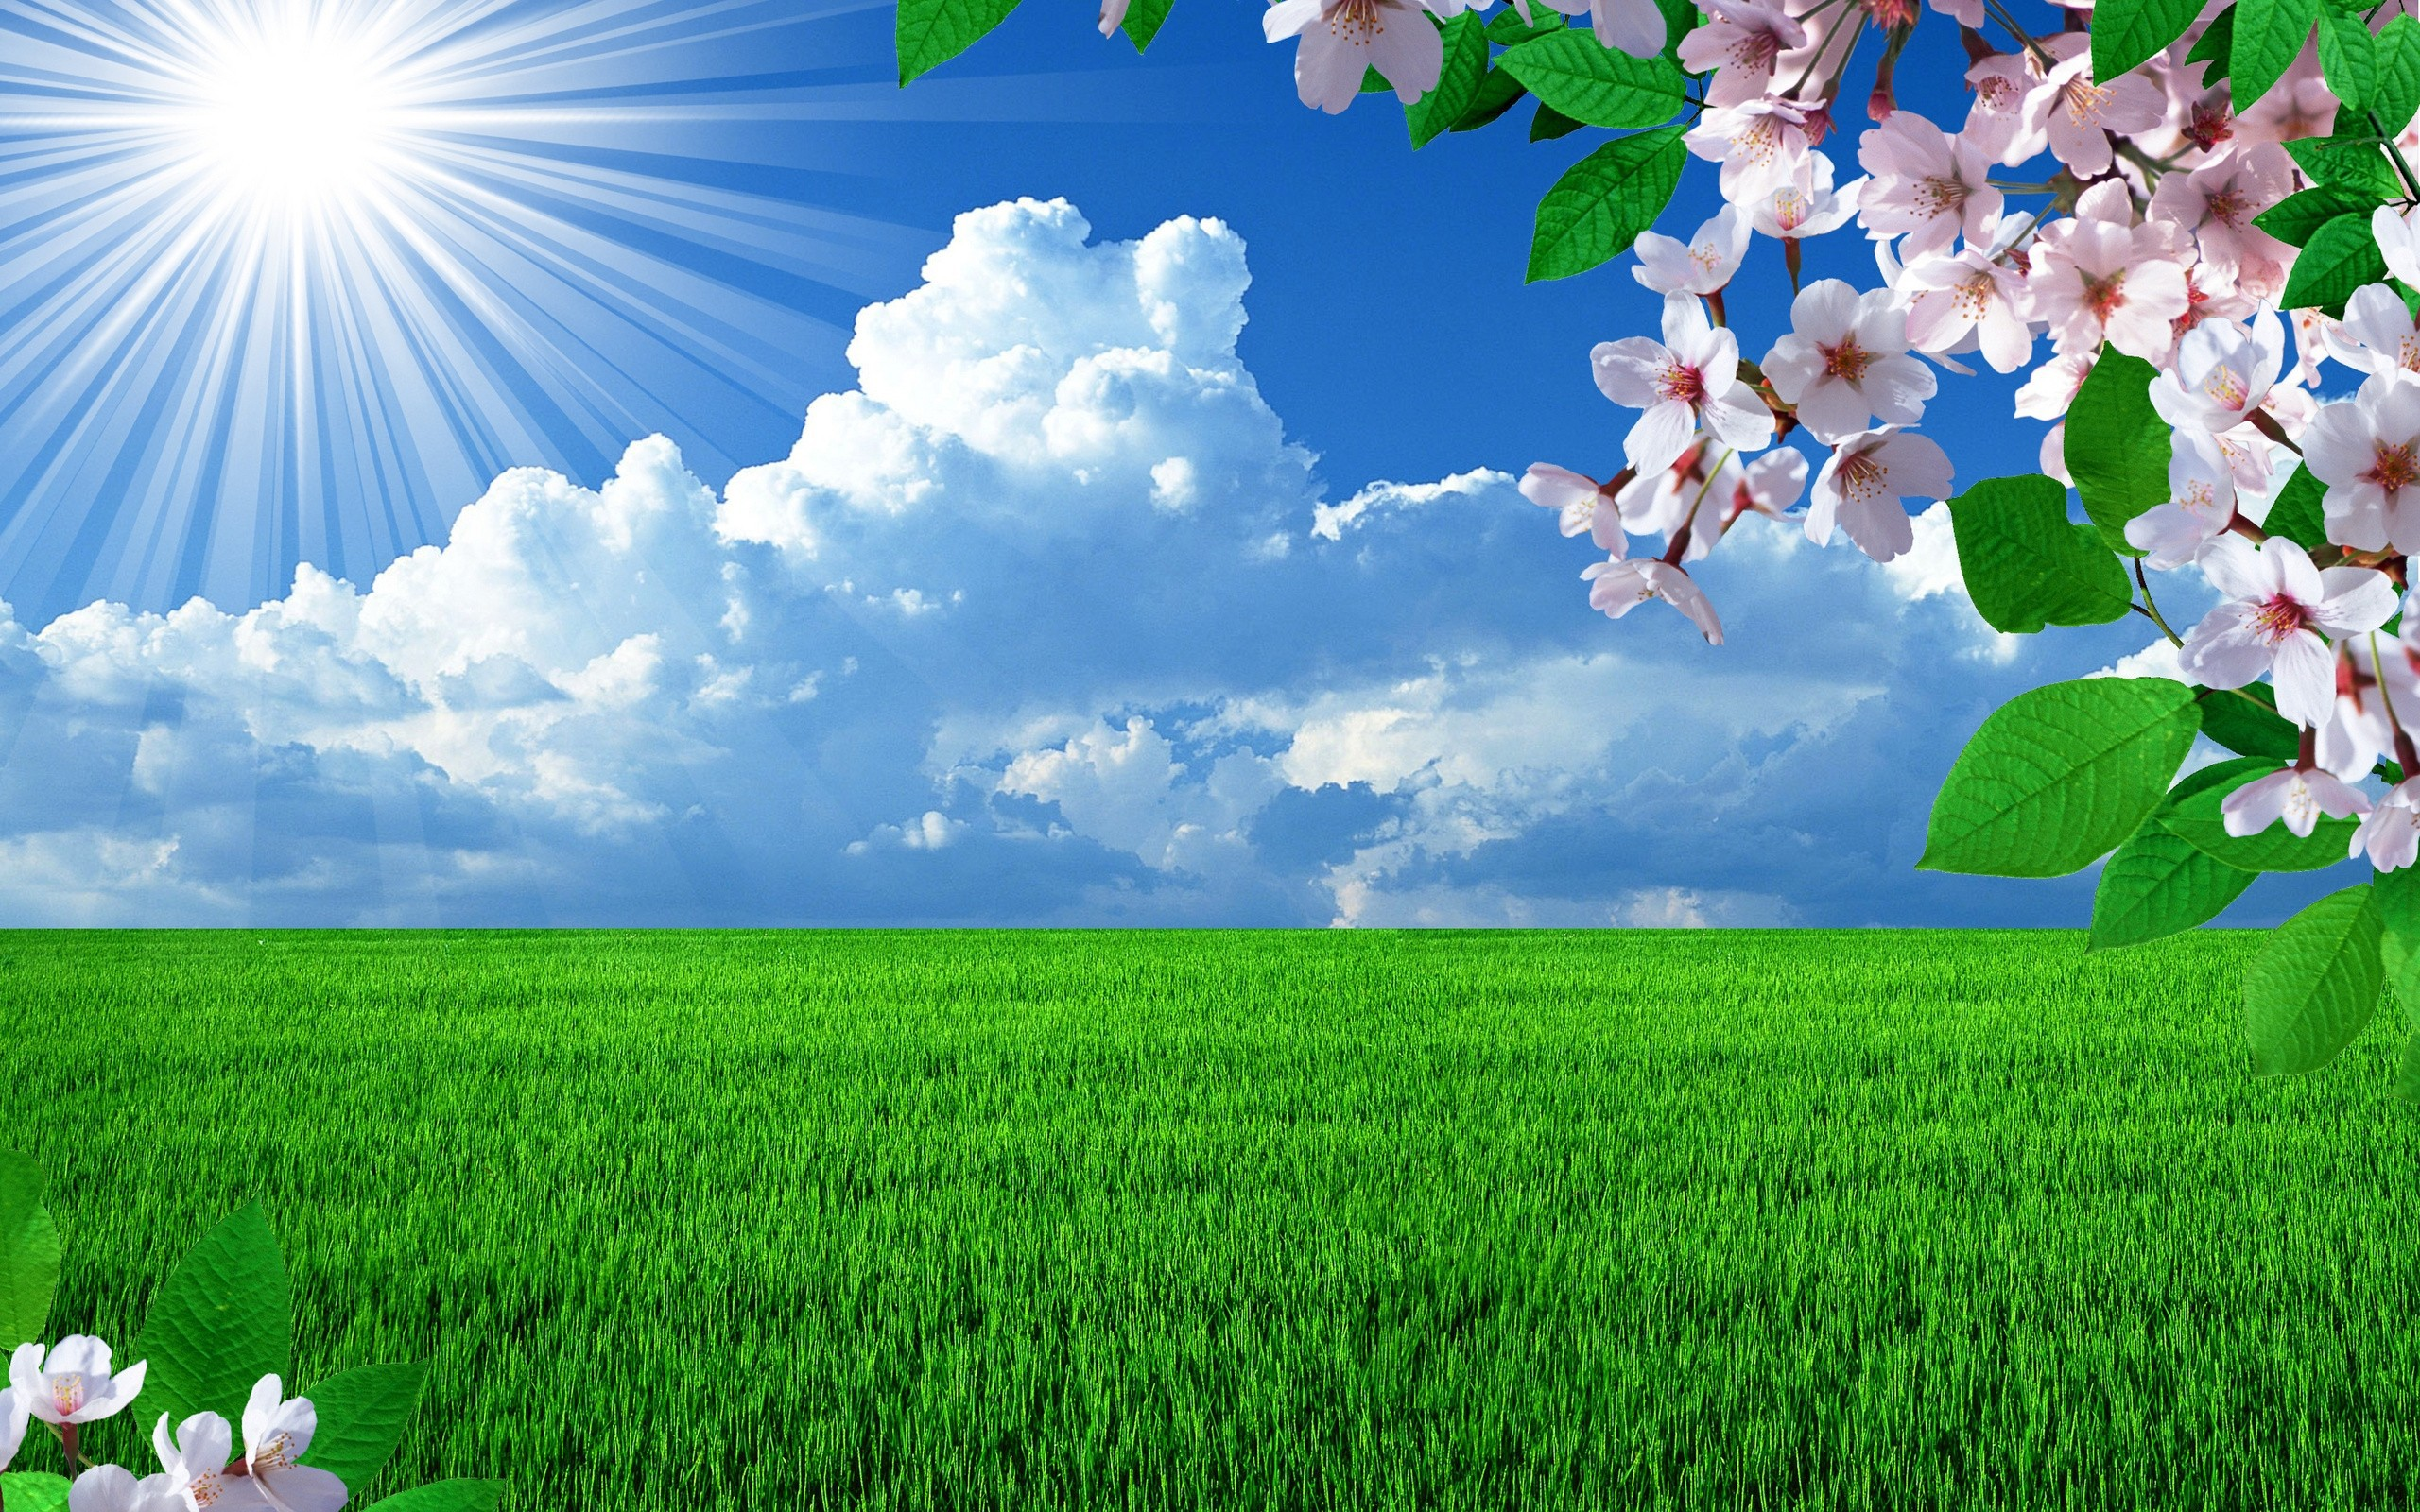 Beautiful spring field wallpapers and images   wallpapers pictures 2560x1600